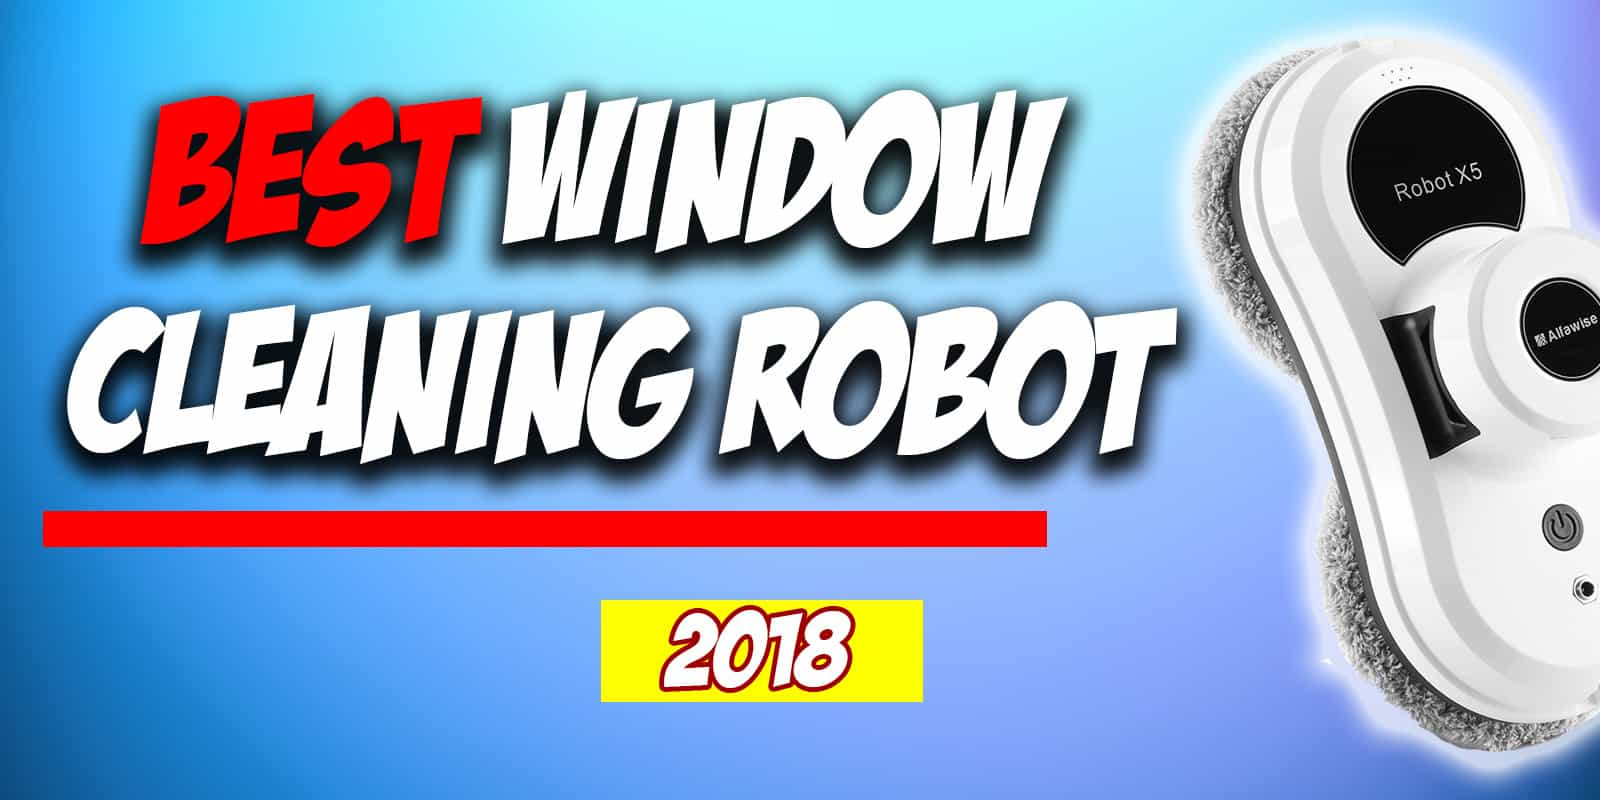 Best Window Cleaning Robot 2018